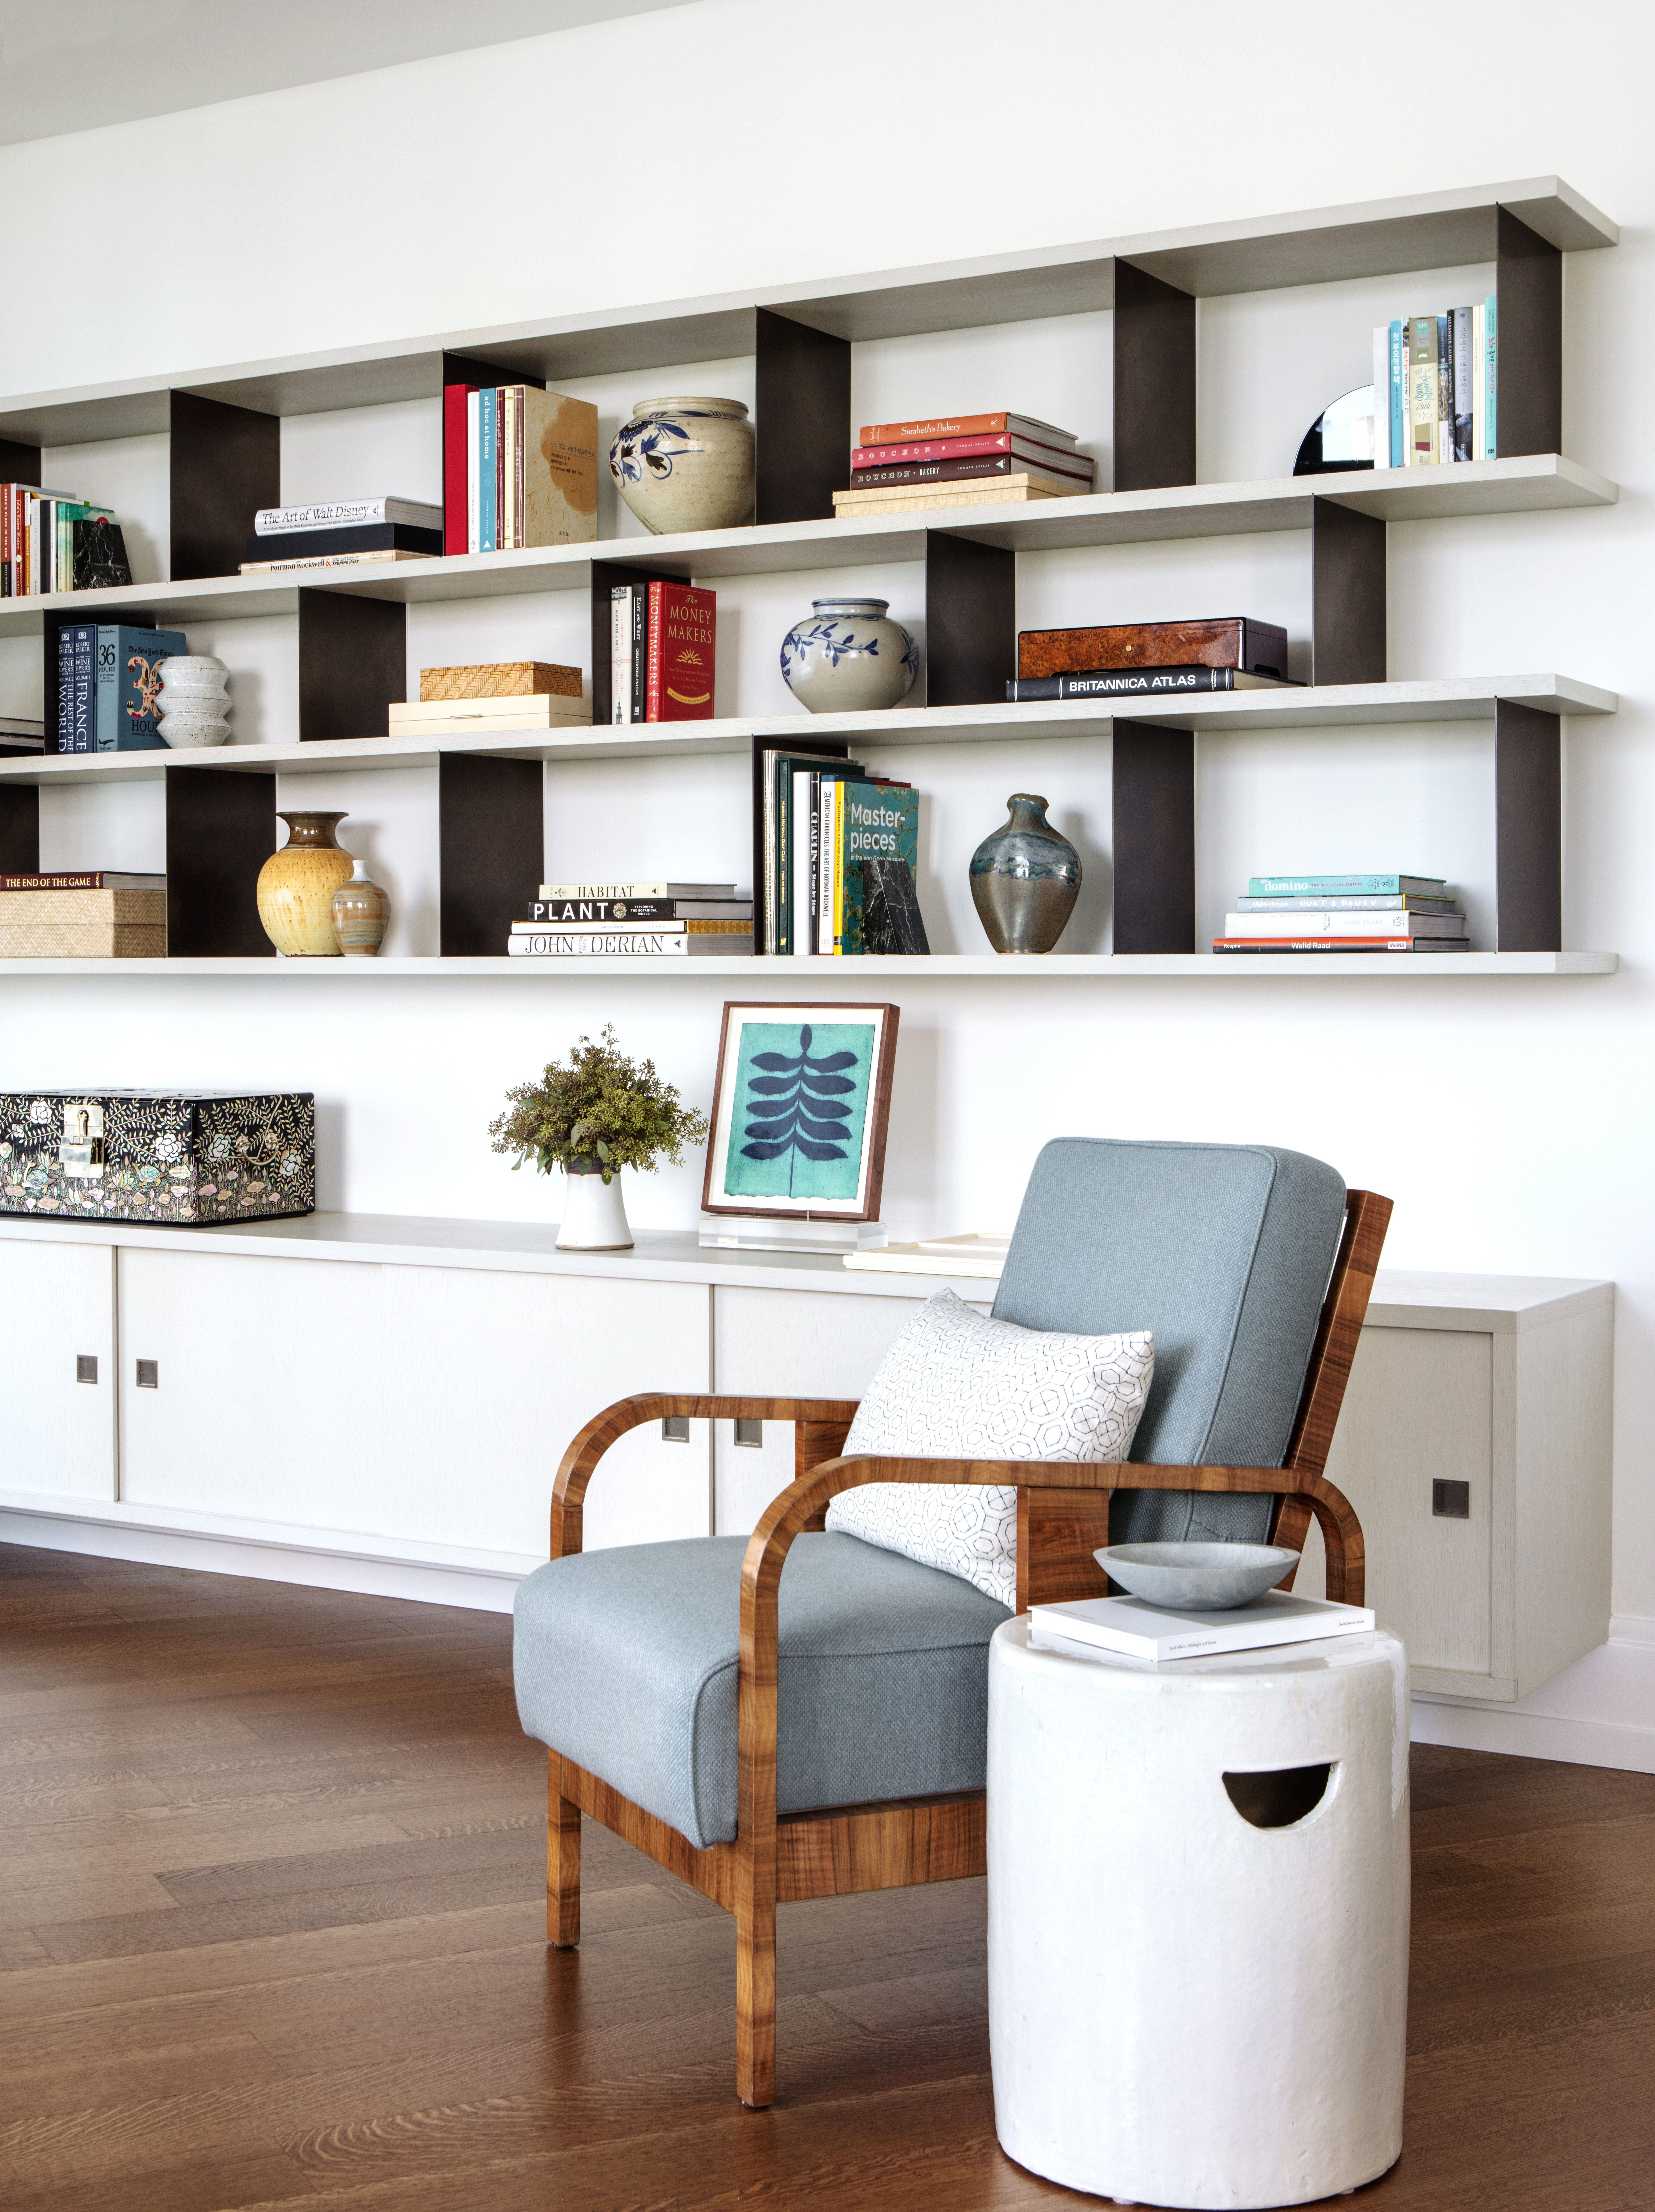 Modern Living Room Built-in Bookcase With Open Shelves And